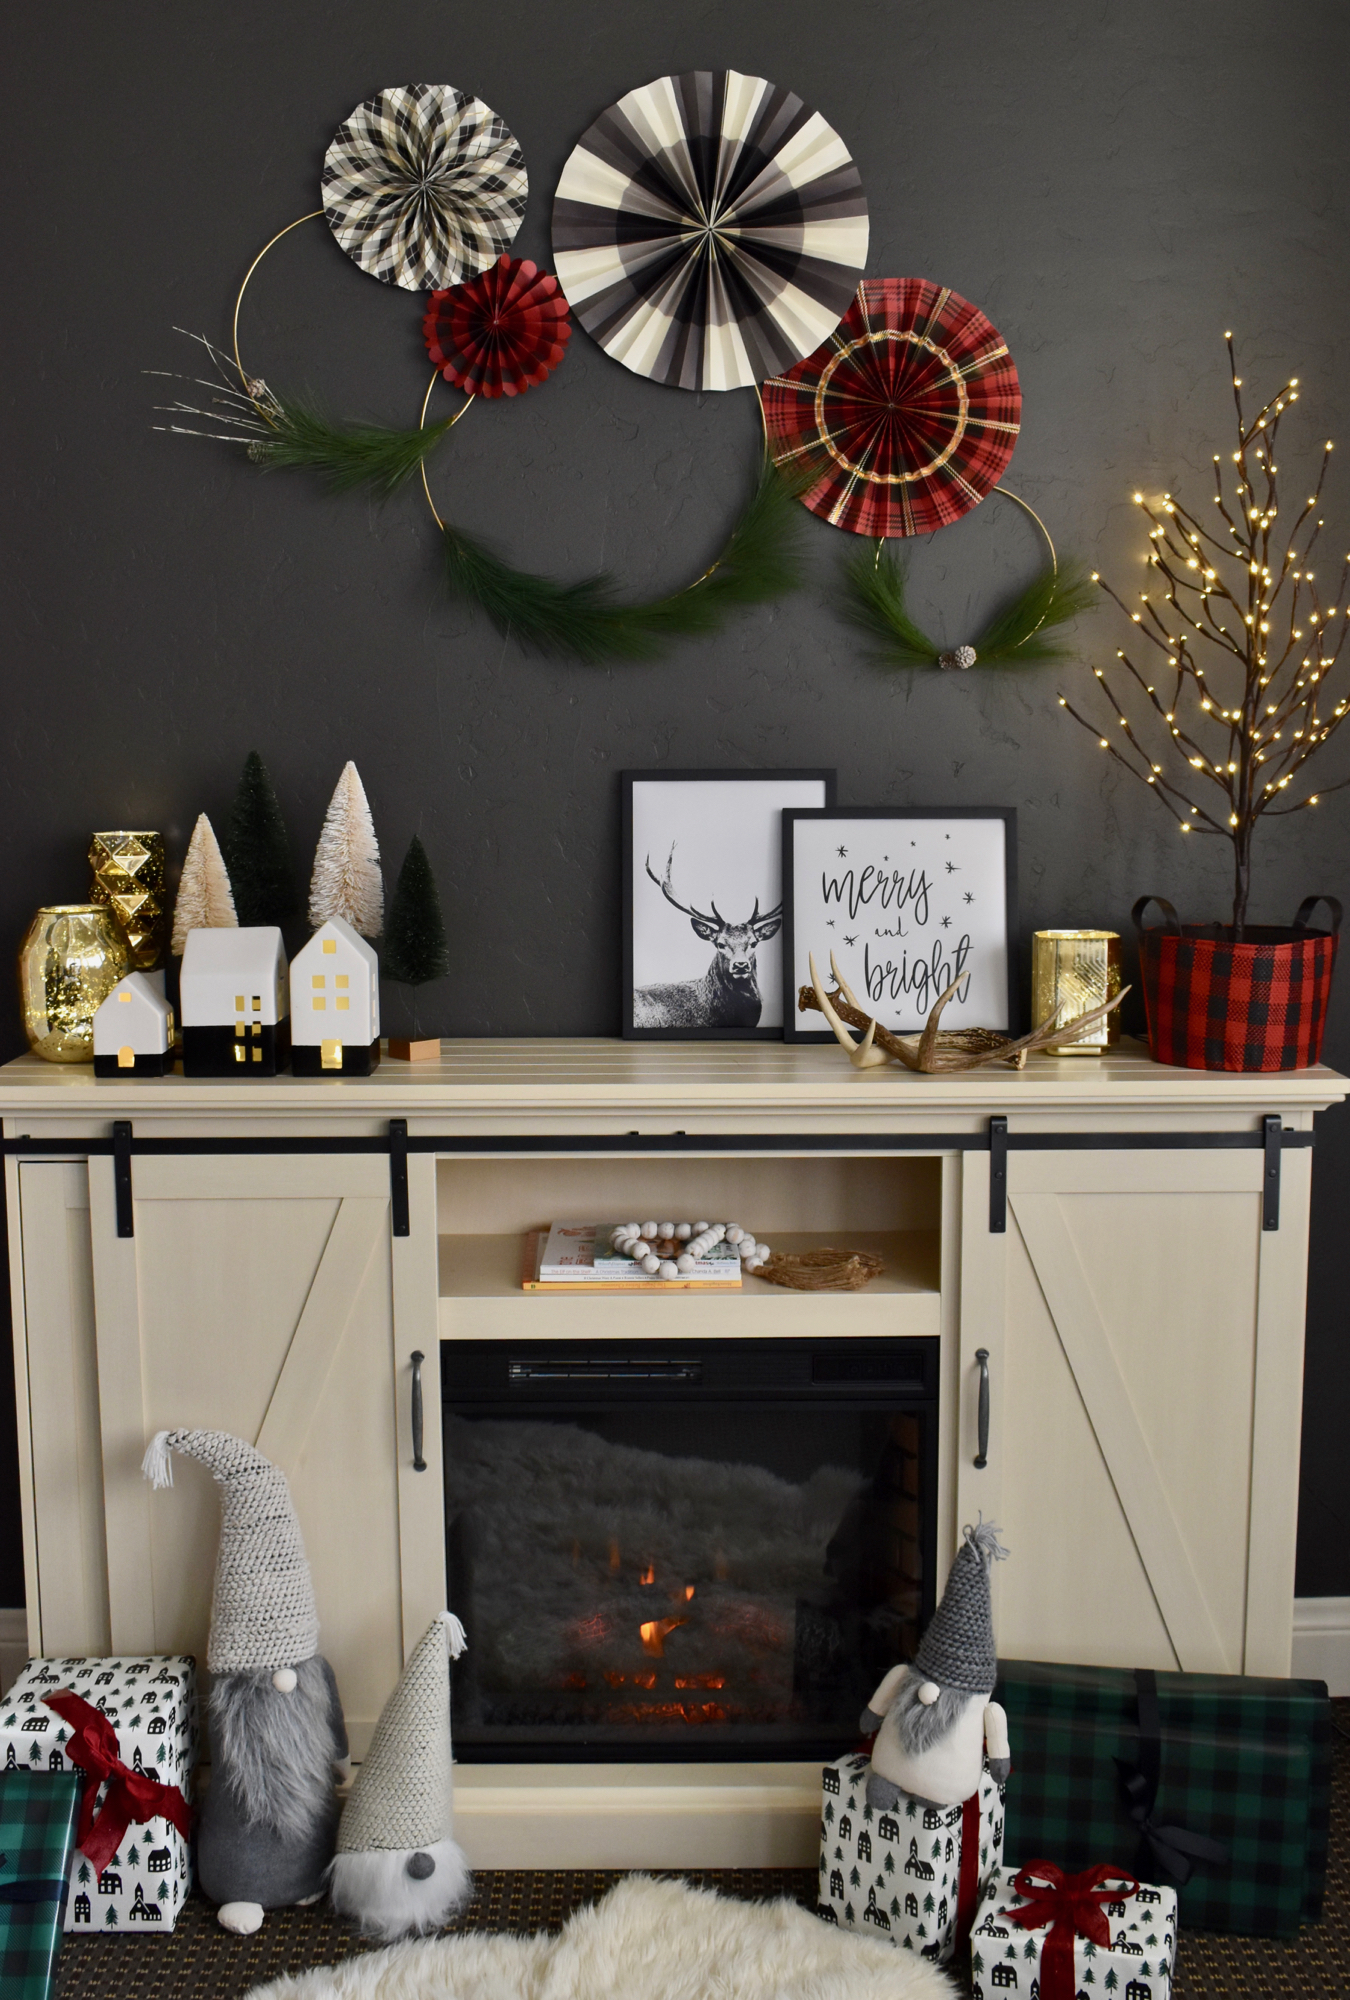 Christmas Decoration Ideas: Use Gifts as Fireplace Christmas Decorations